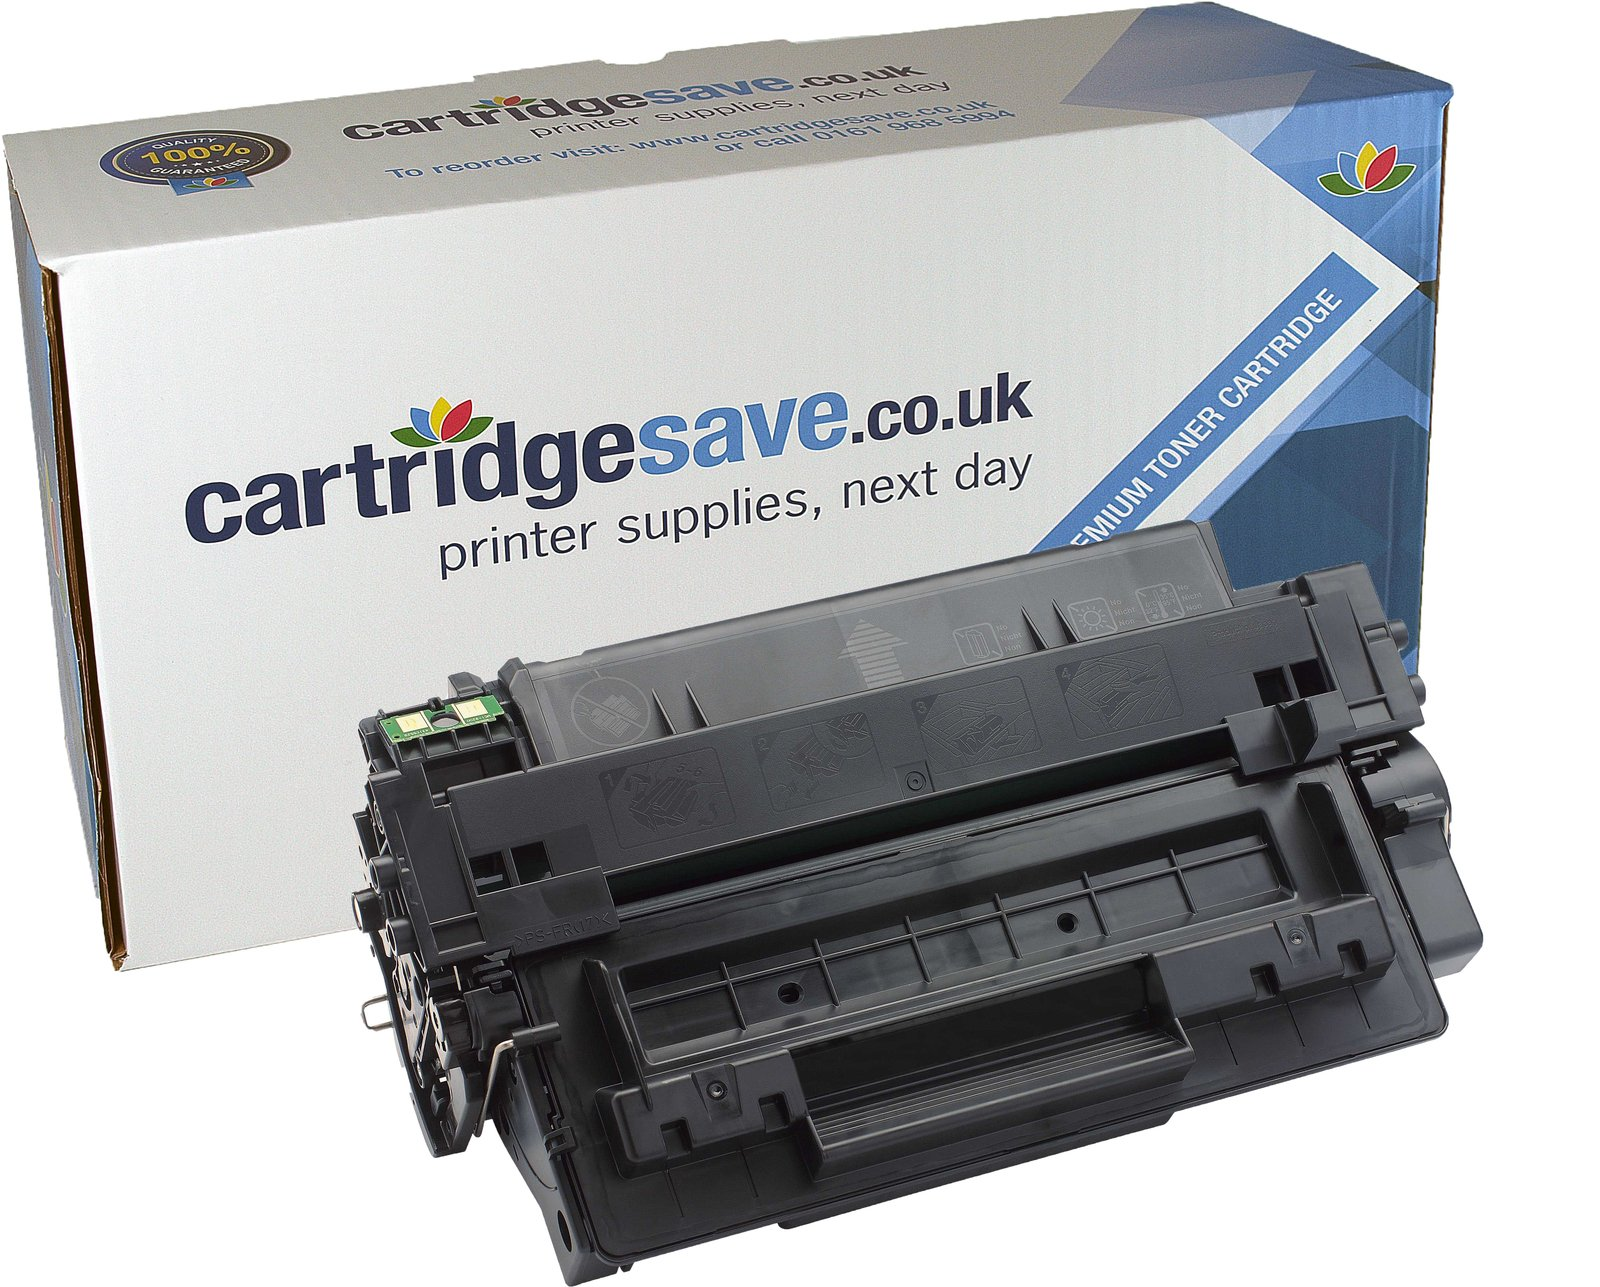 Compatible Black HP 55A Toner Cartridge (Replaces HP CE255A Laser Printer Cartridge)